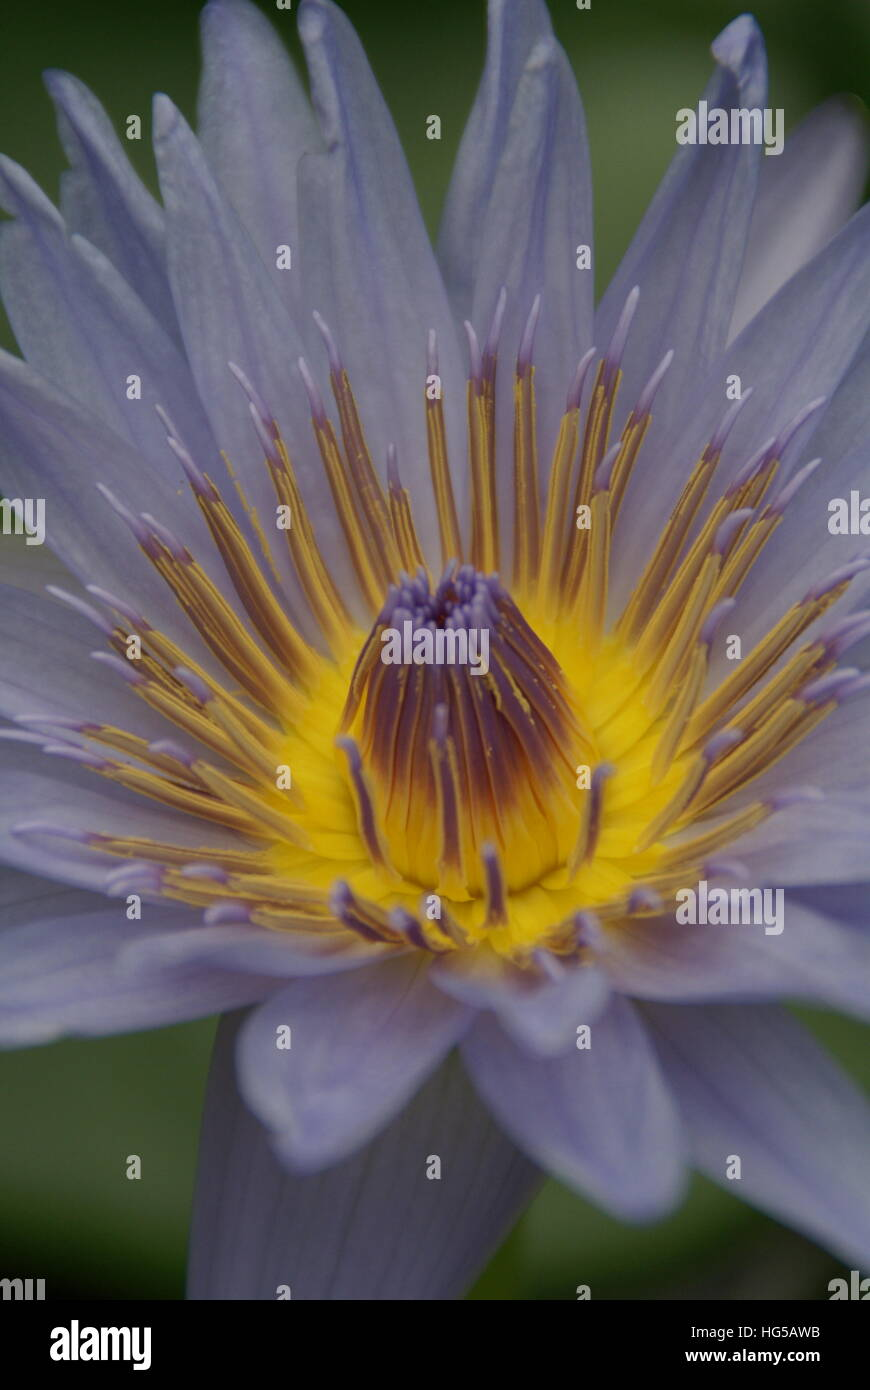 A water lily in a pond up close. - Stock Image